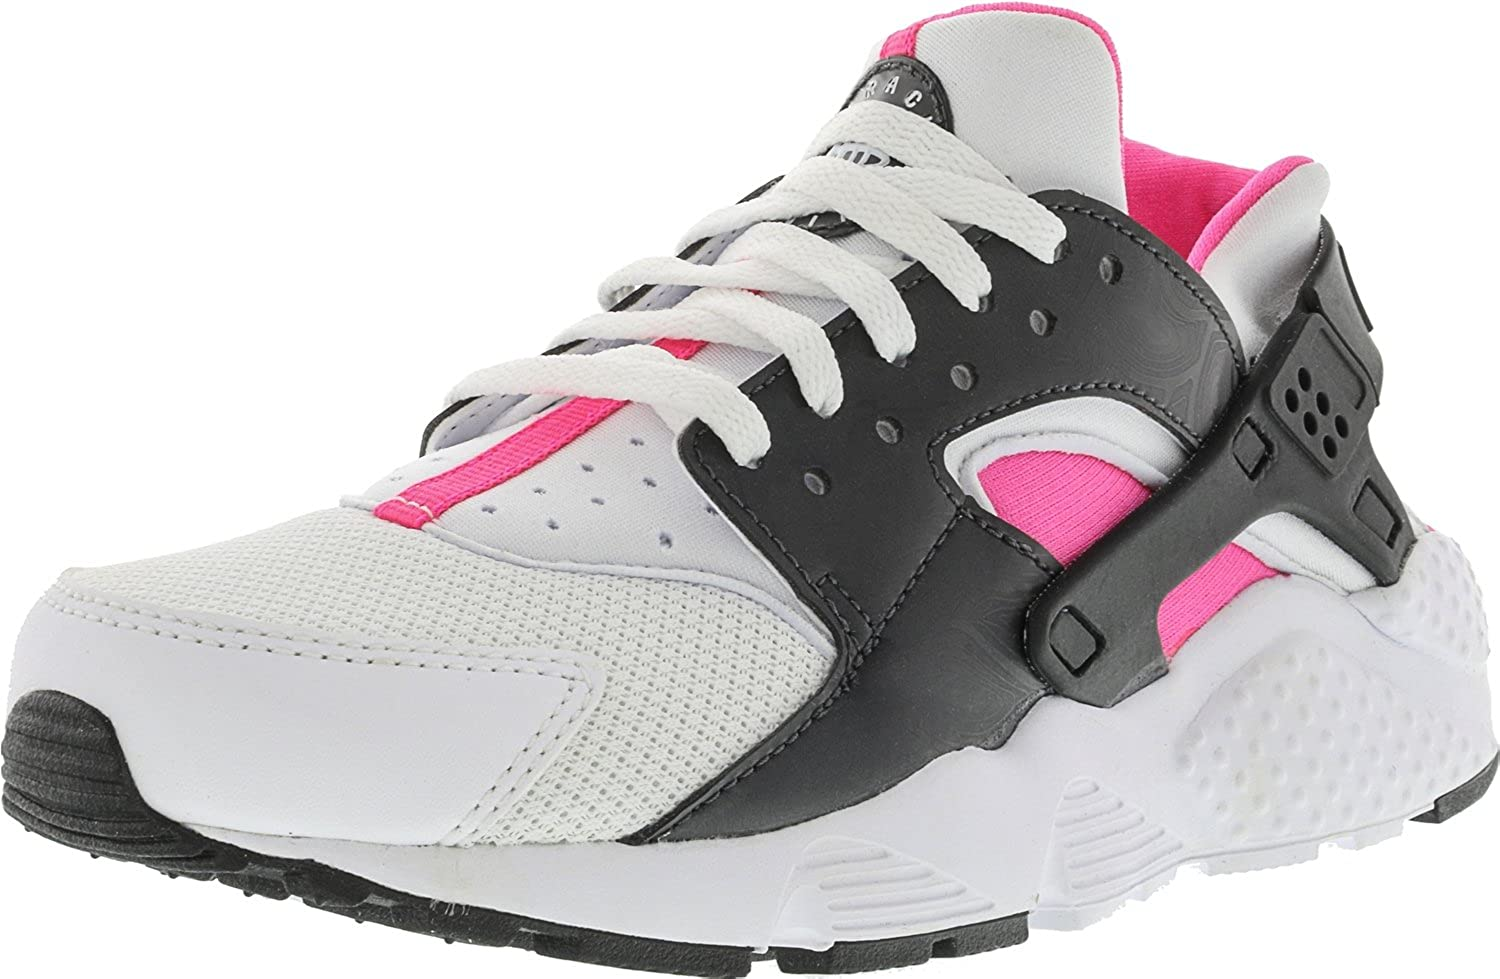 6ca8169a087 Nike Huarache Run (Gs), Girls' Trainers: Amazon.co.uk: Shoes & Bags